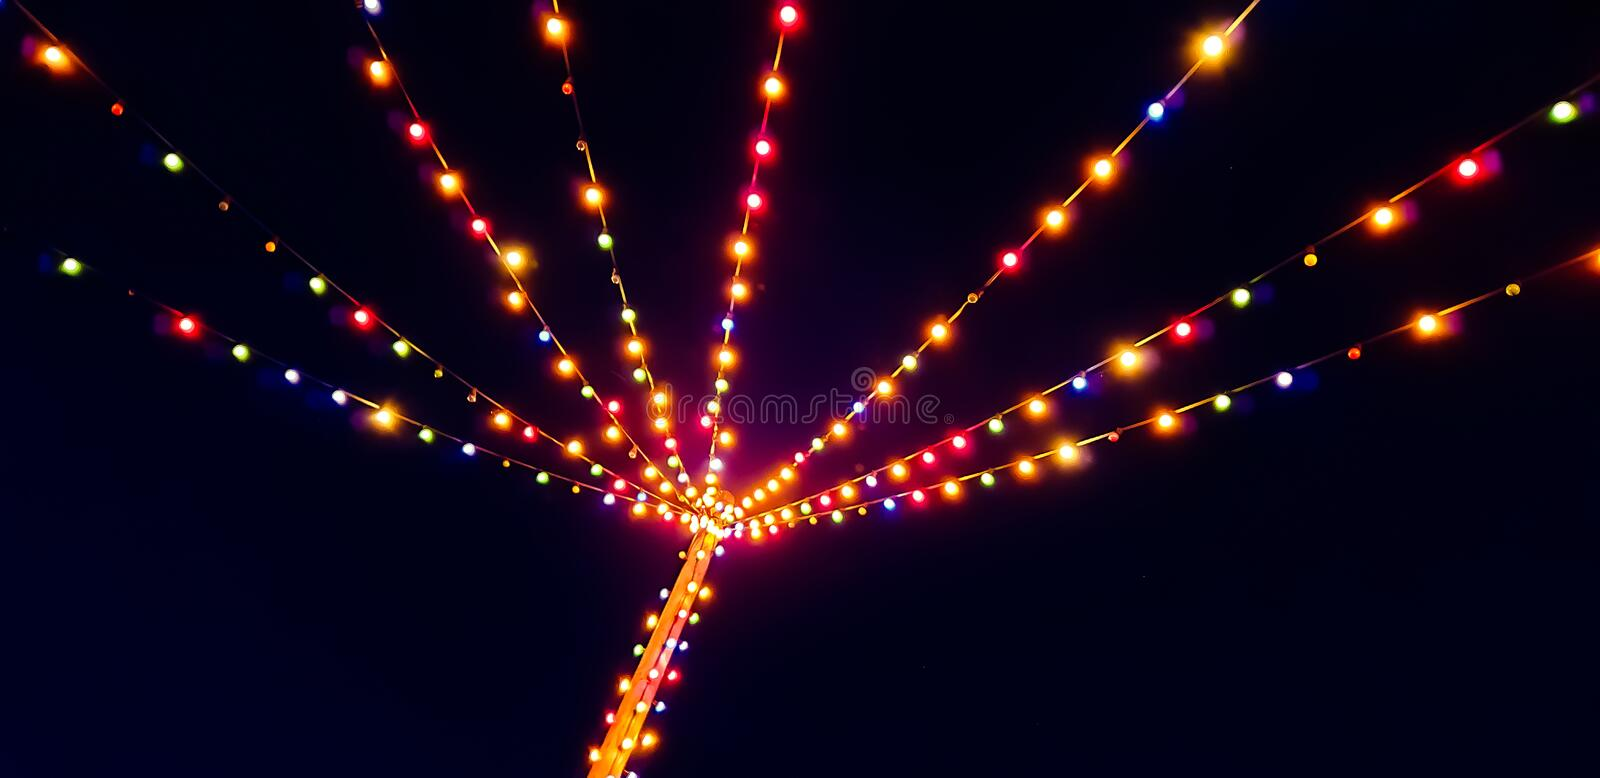 Blurred summer party outdoor bulb garlands. Blurred colorful summer party outdoor bulb garlands royalty free stock photo